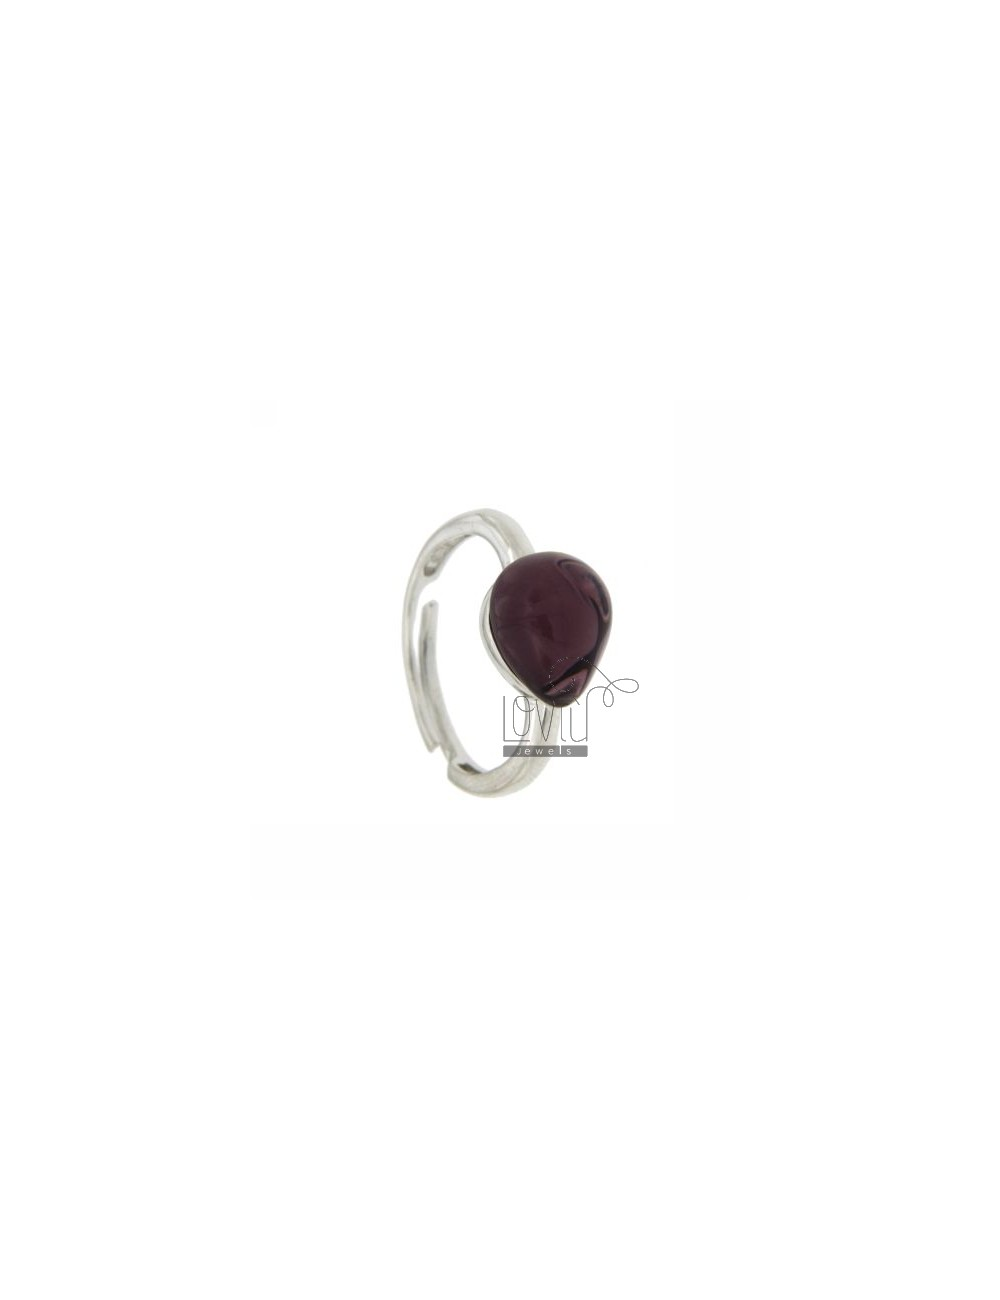 HYDROTHERMAL STONE RING WITH A DROP IN 13 MM 1 PURPLE AG TIT 925 RHODIUM SIZE ADJUSTABLE